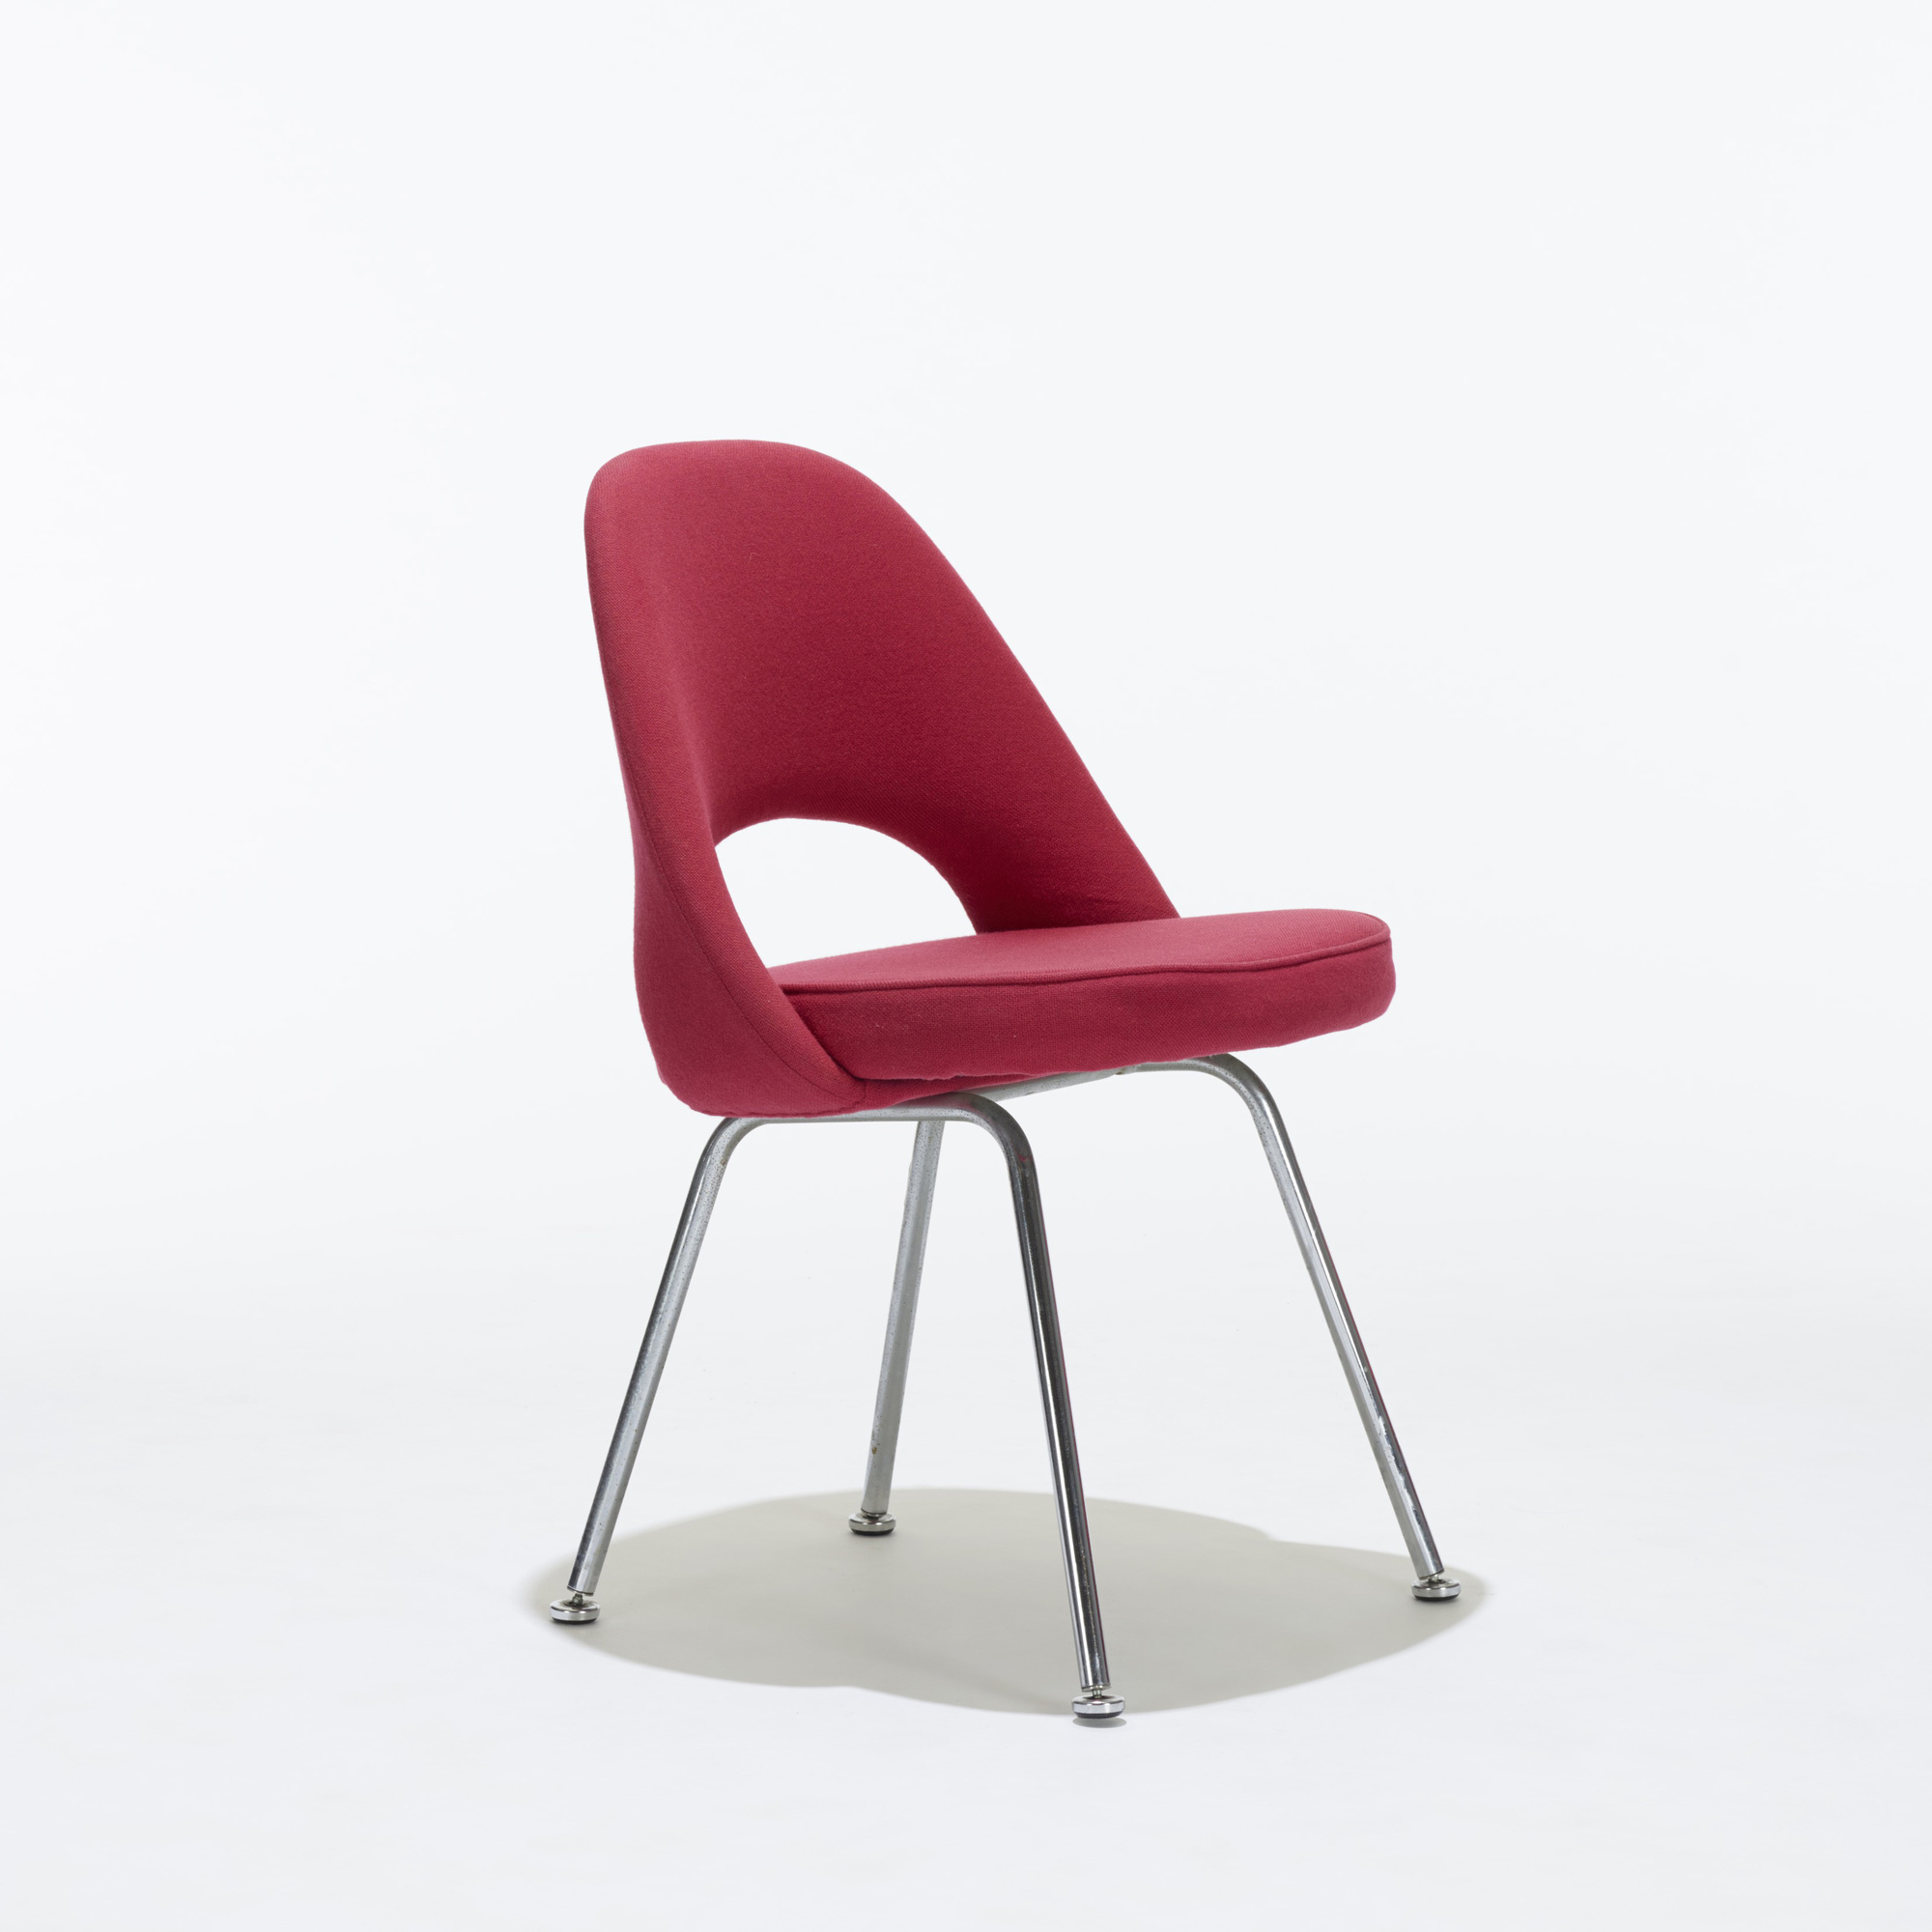 Saarinen Chair Womb Knoll Images Tulip